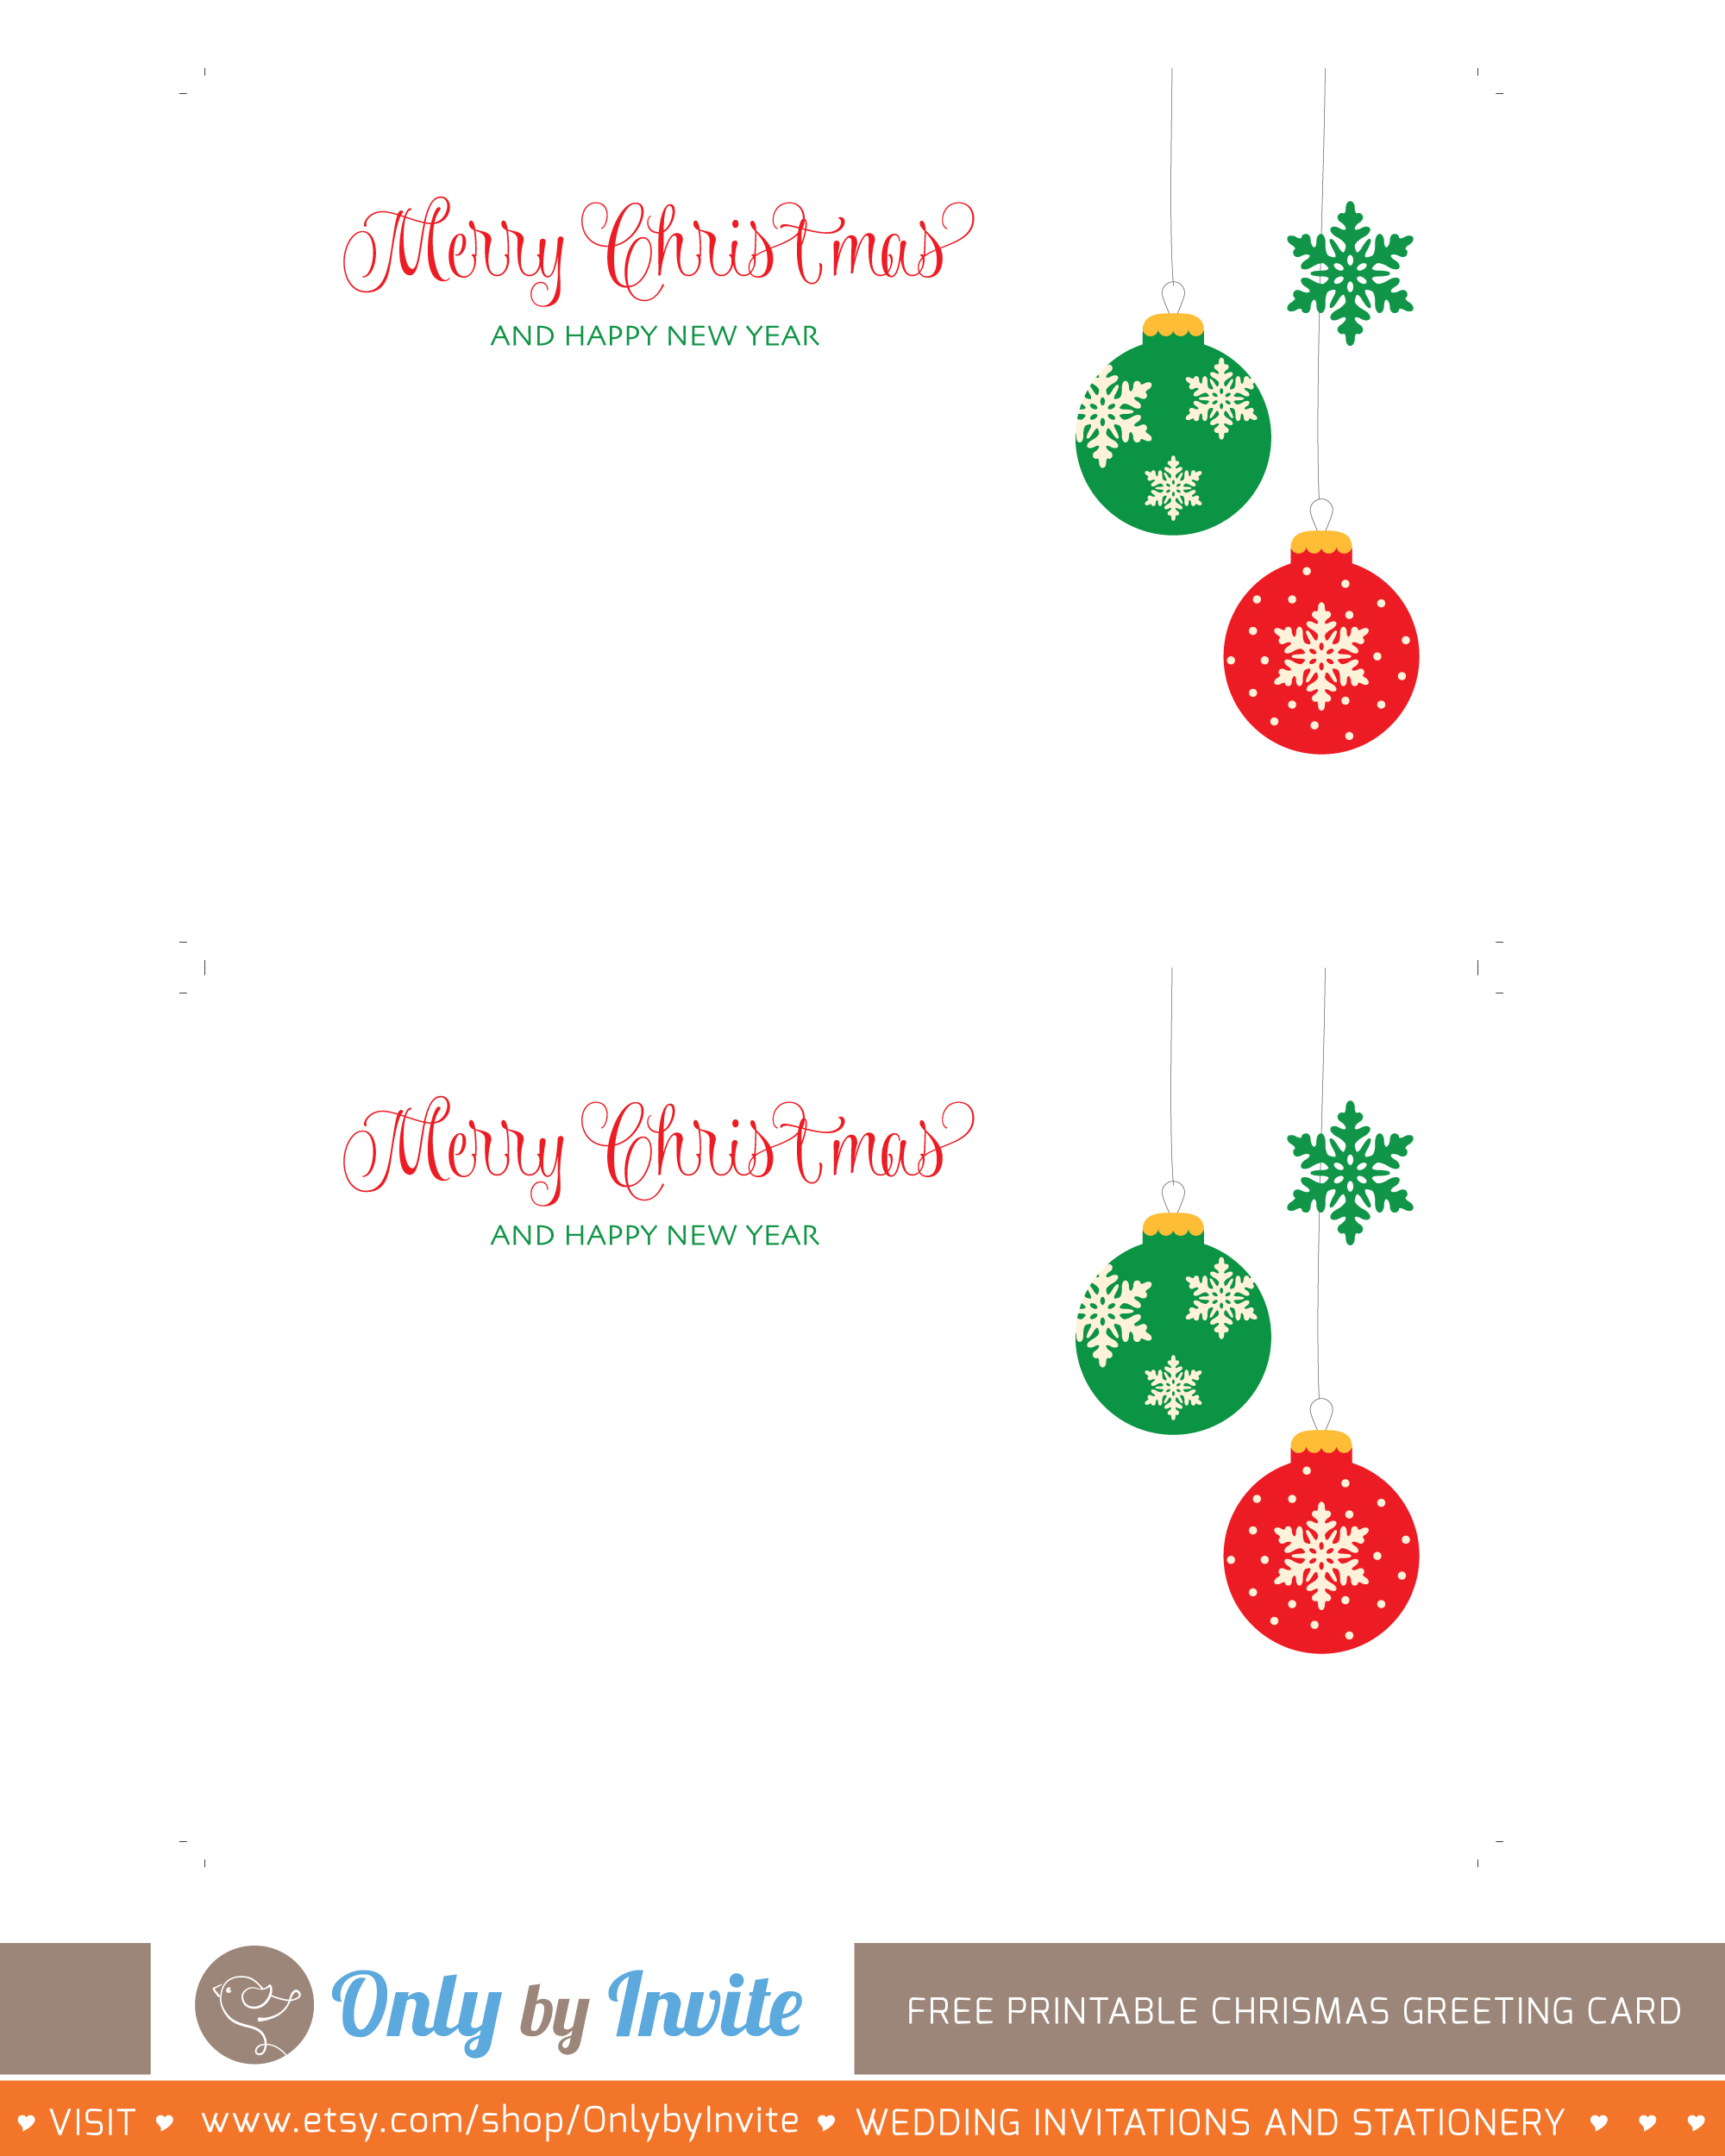 001 Printable Greetings Cards Templates Free Christmas Greeting Card - Free Printable Blank Greeting Card Templates